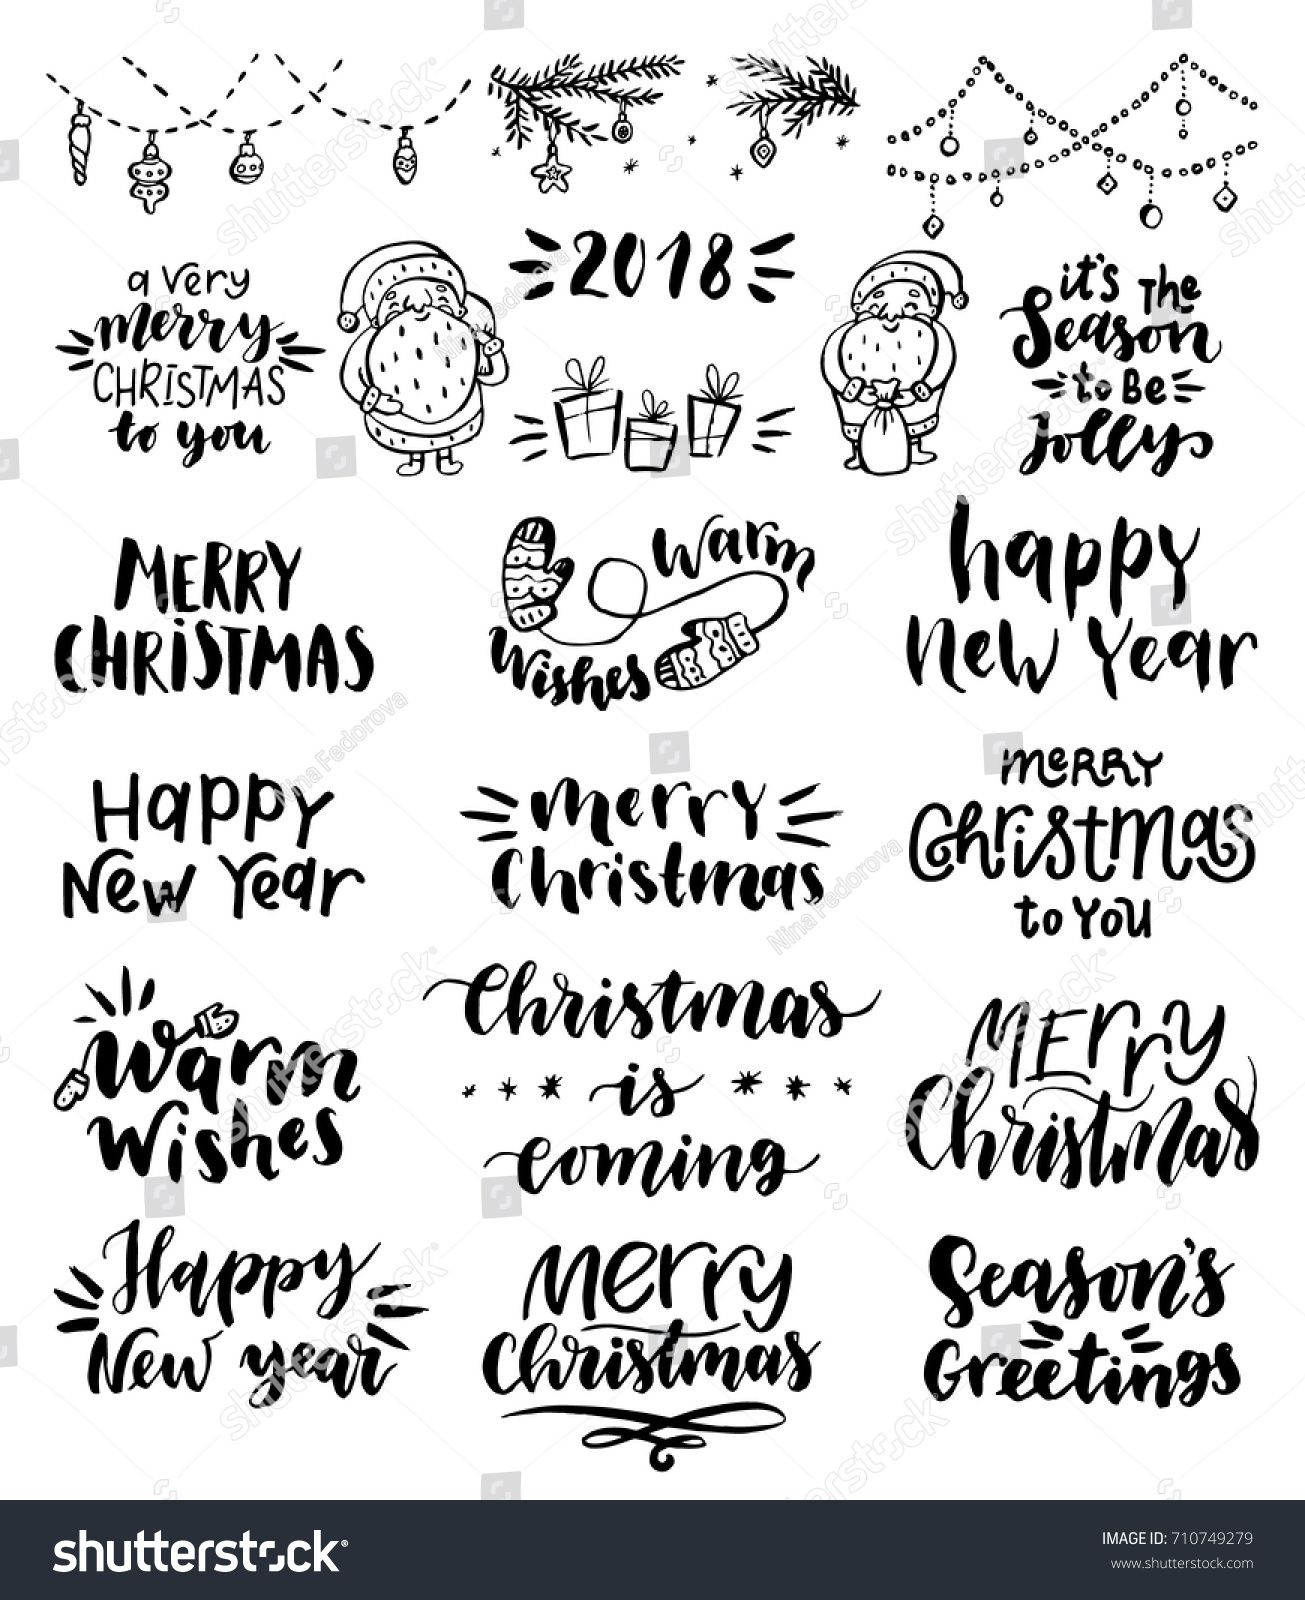 Collection Of Merry Christmas And Happy New Year Hand Lettering In Different StylesVector Illustration